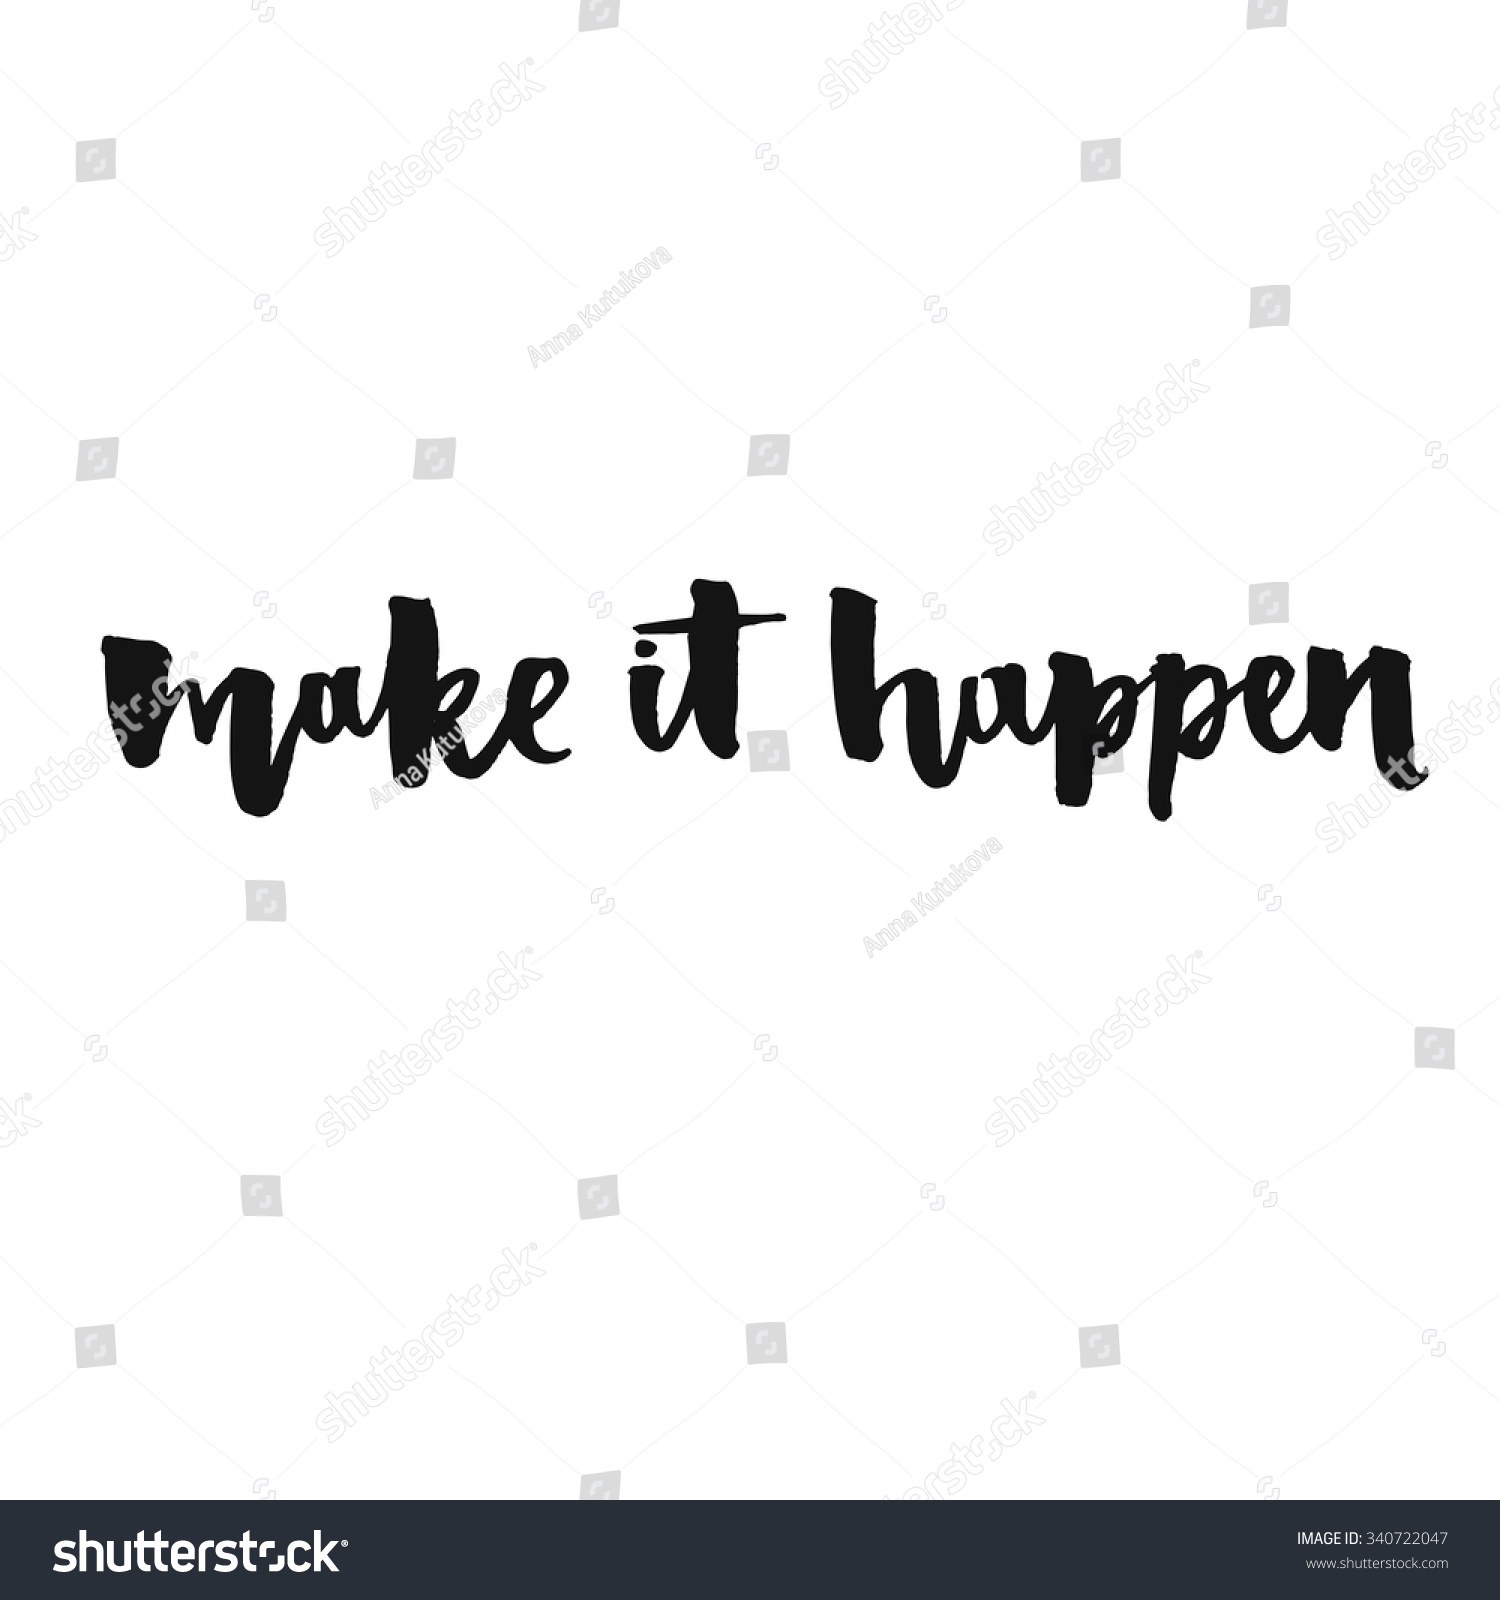 Make it happen inspirational quote positive saying